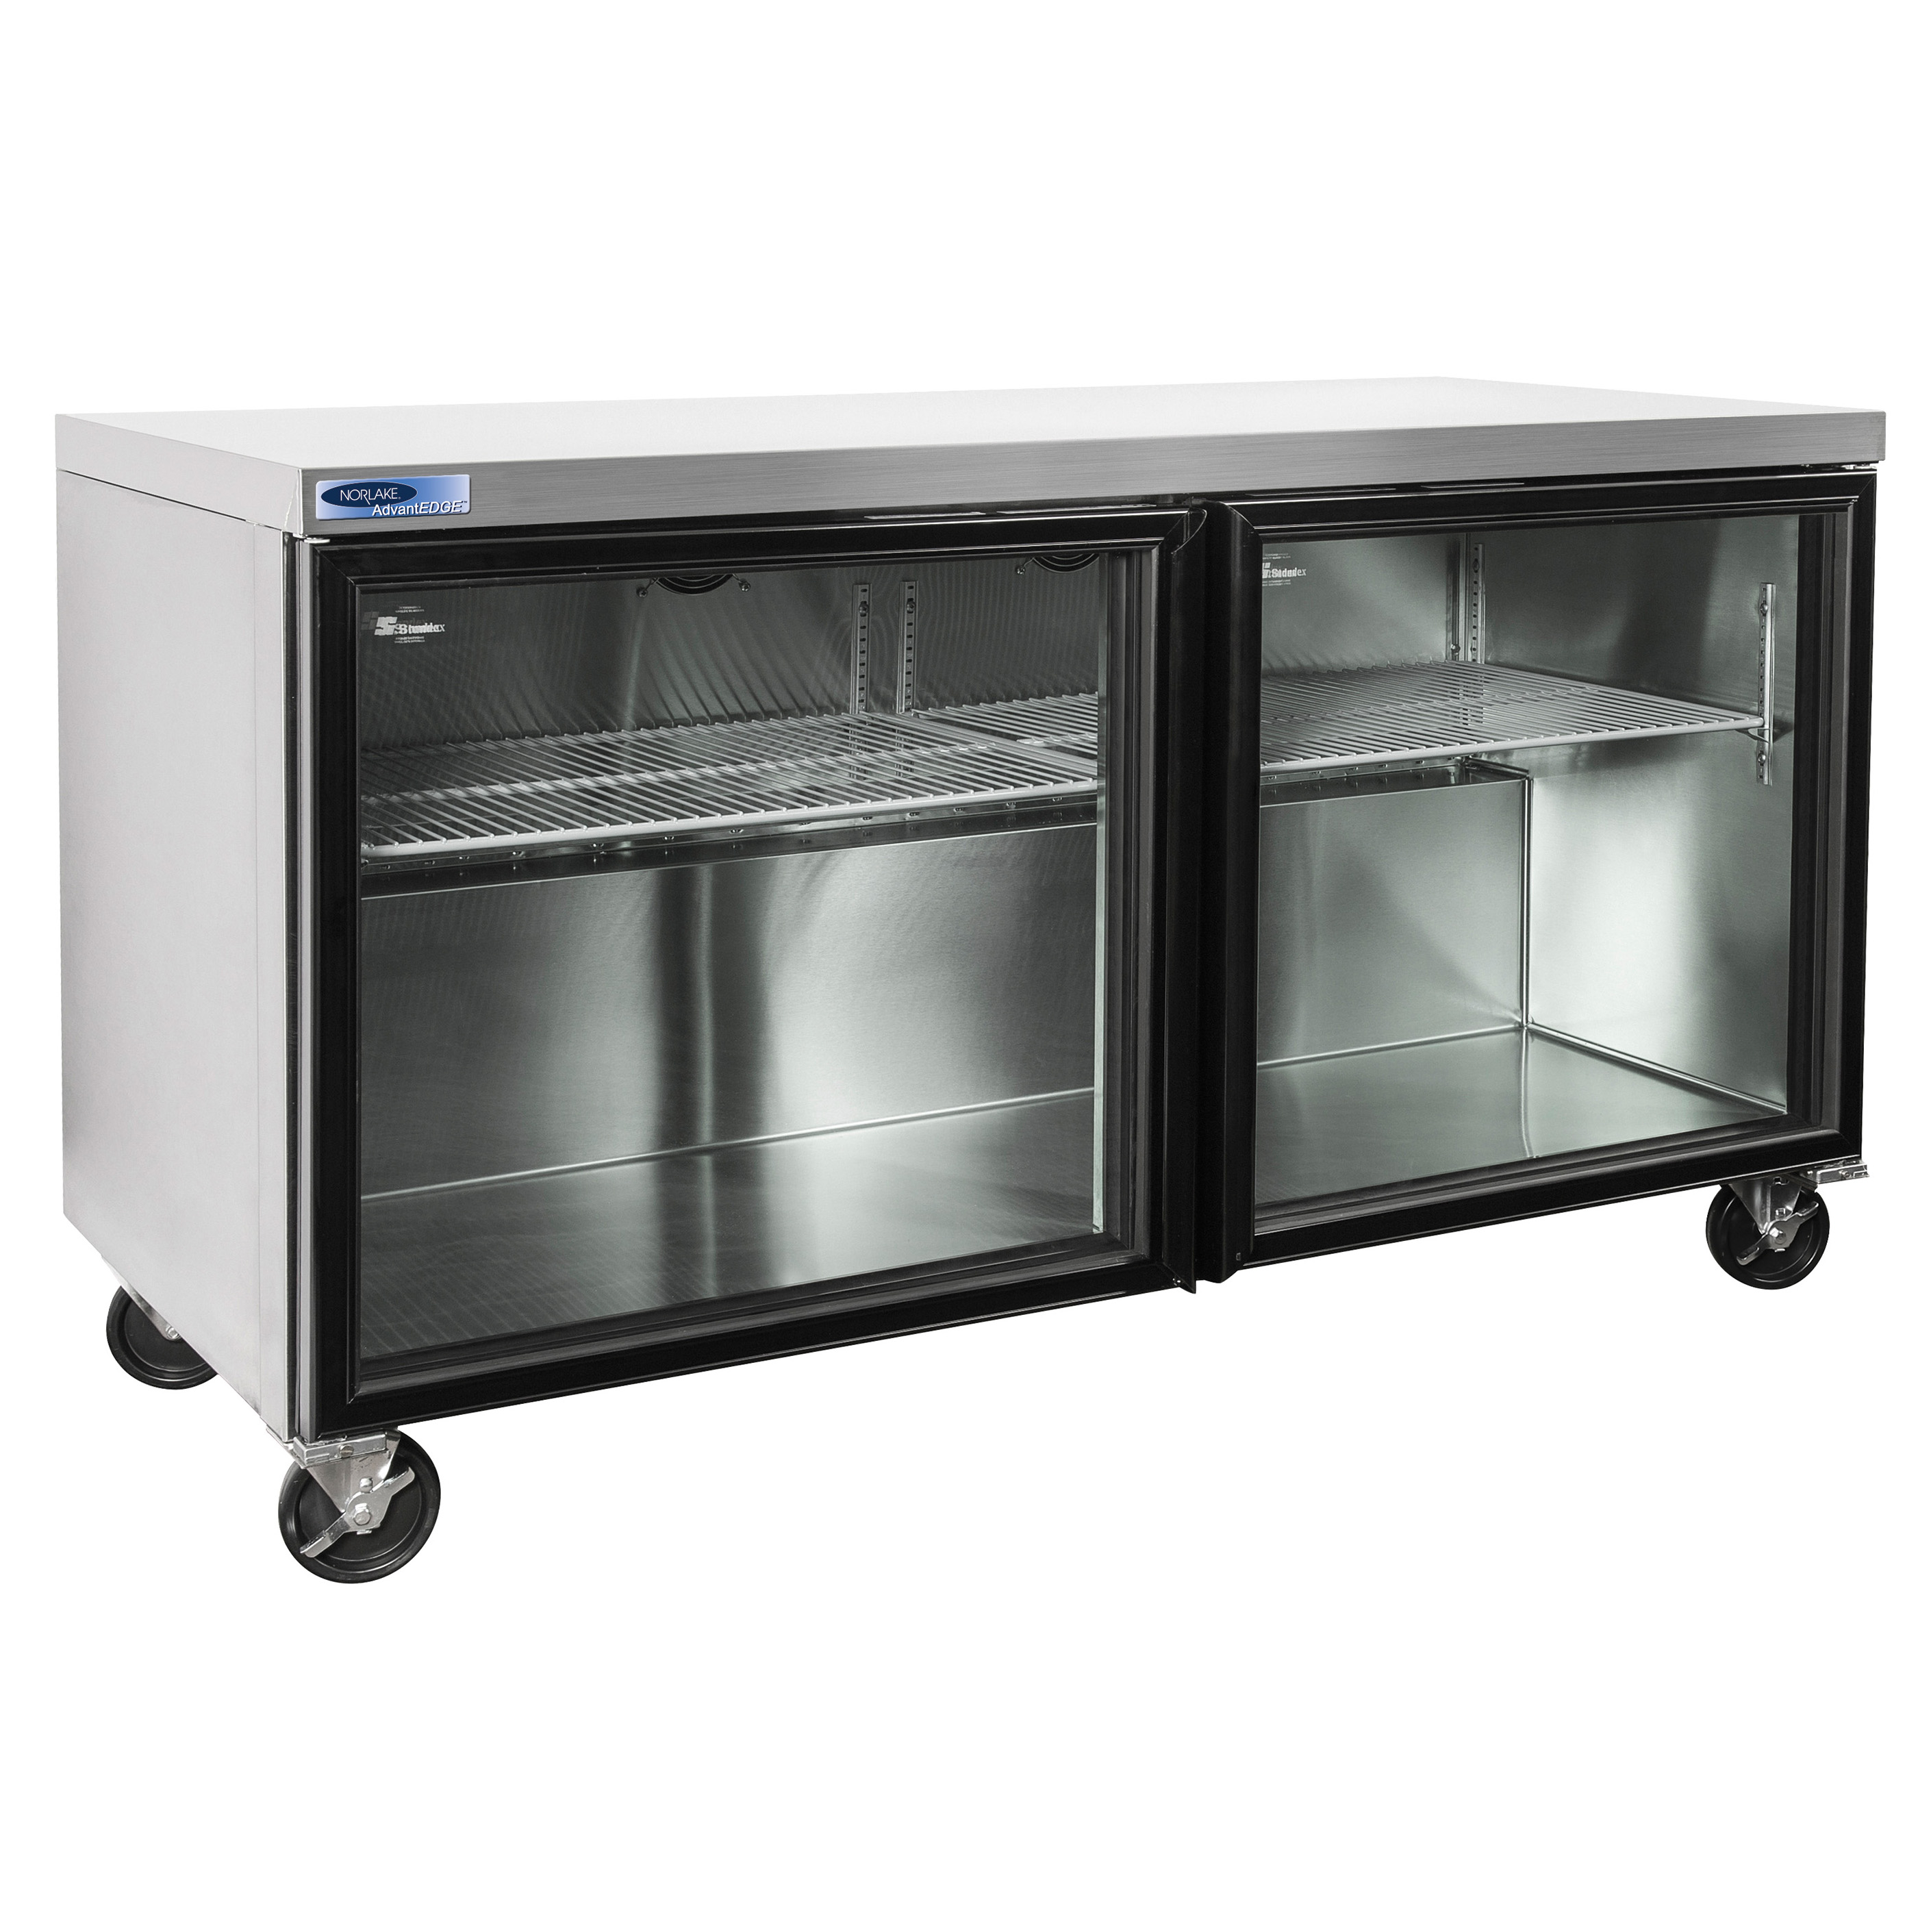 Nor-Lake NLURG60A refrigerator, undercounter, reach-in